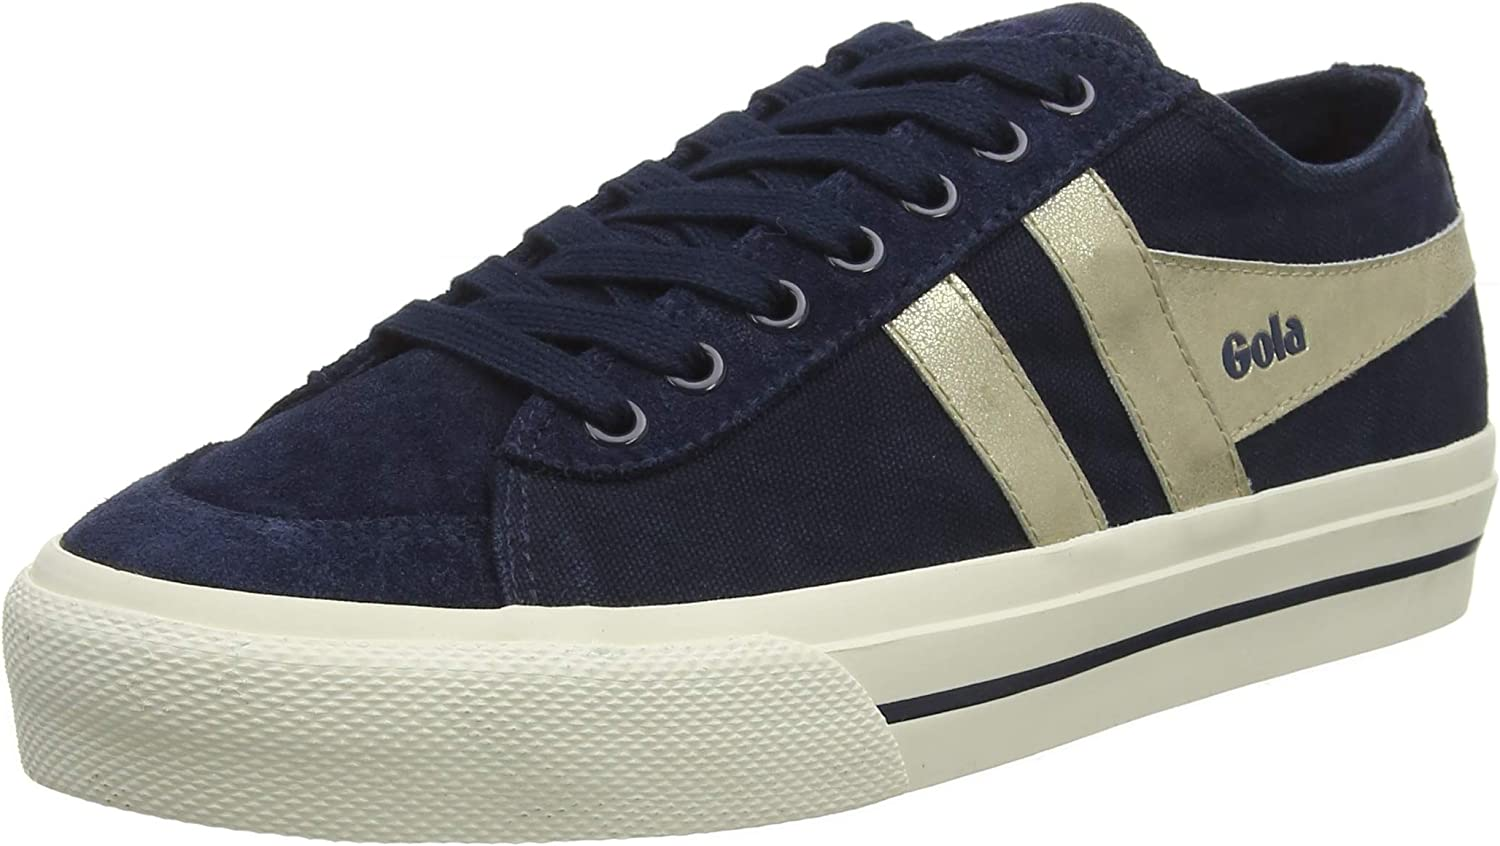 All stores are sold Gola Store Women's Trainers Low-top